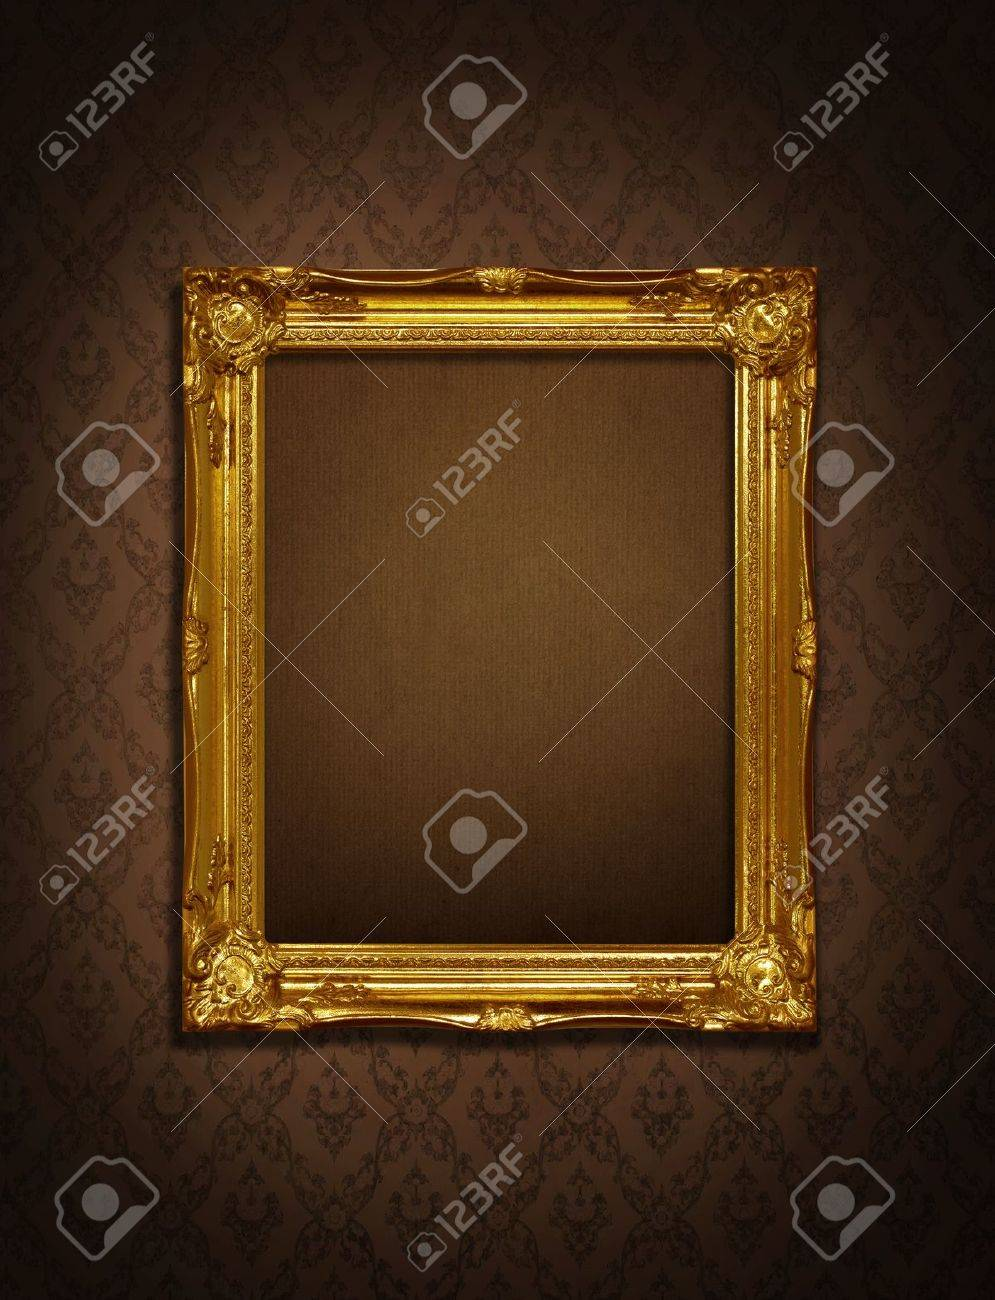 Gold frame stuck on the wall wallpaper thai the dark. Stock Photo - 9868285